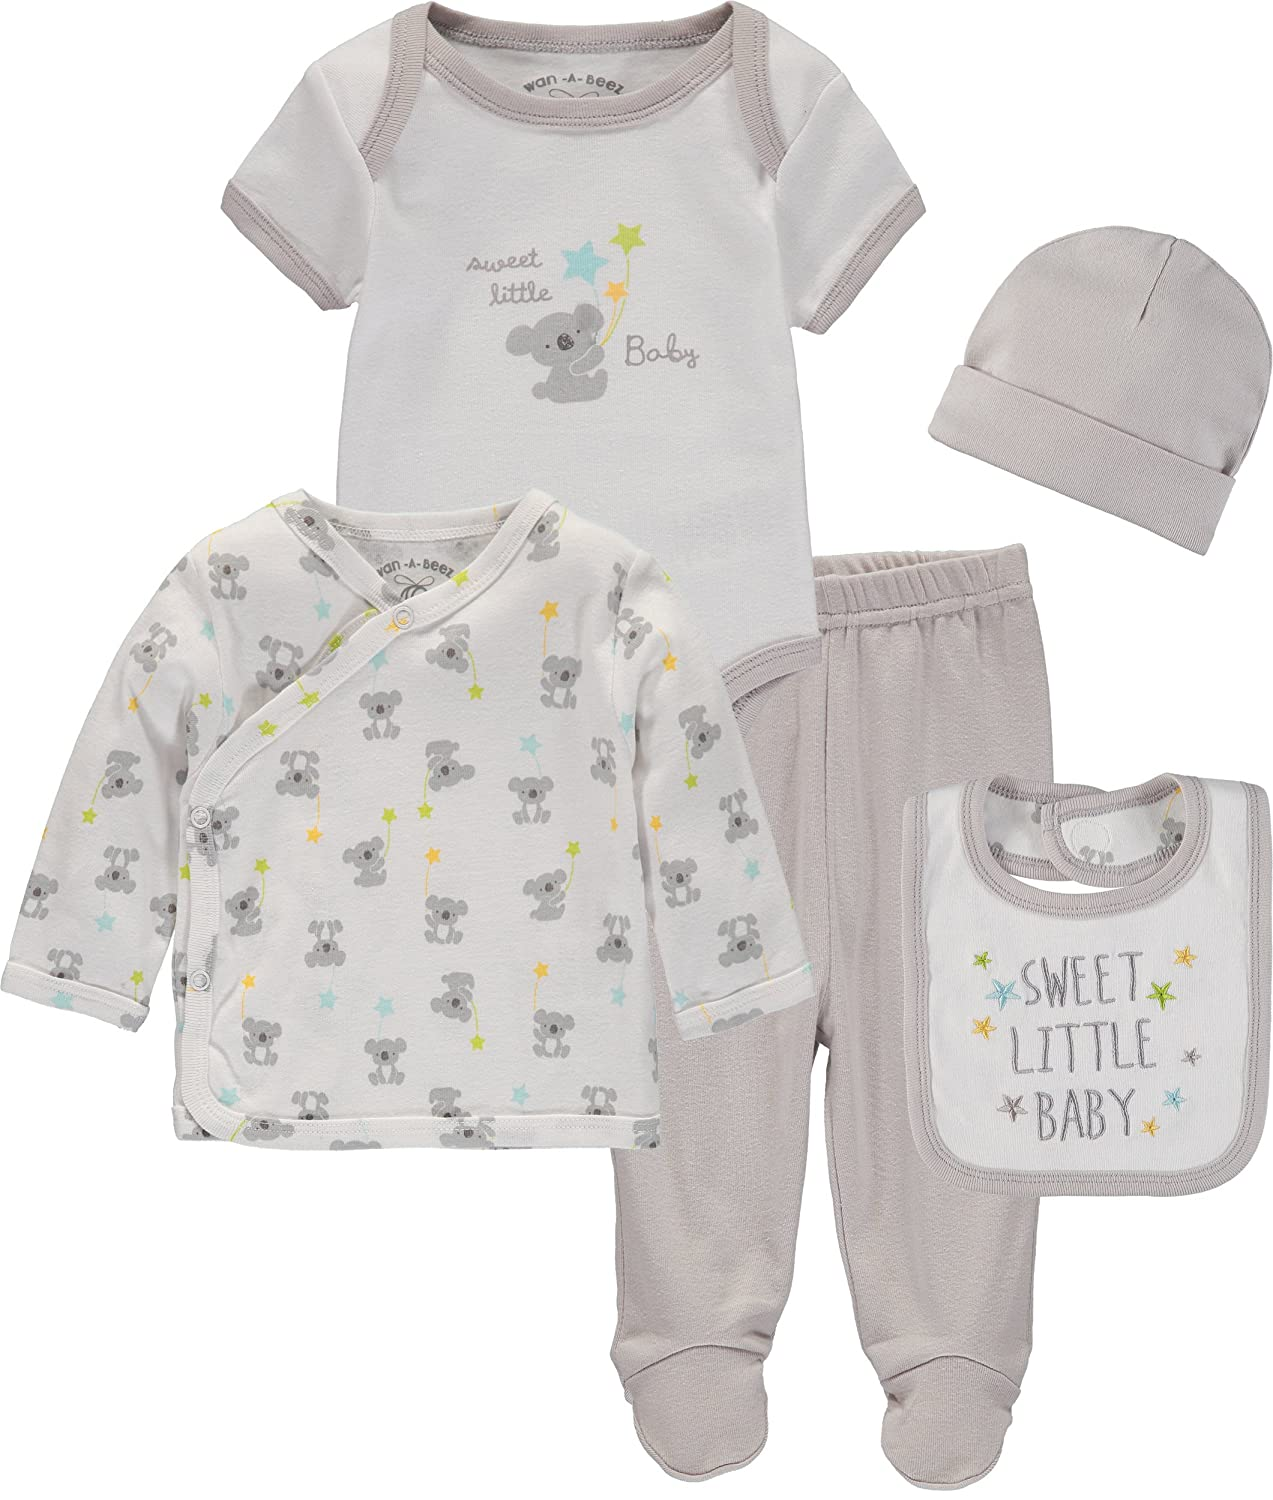 Wan-A-Beez Baby Boys and Baby Girls 5 Piece Take Me Home Layette Gift Set for Newborns